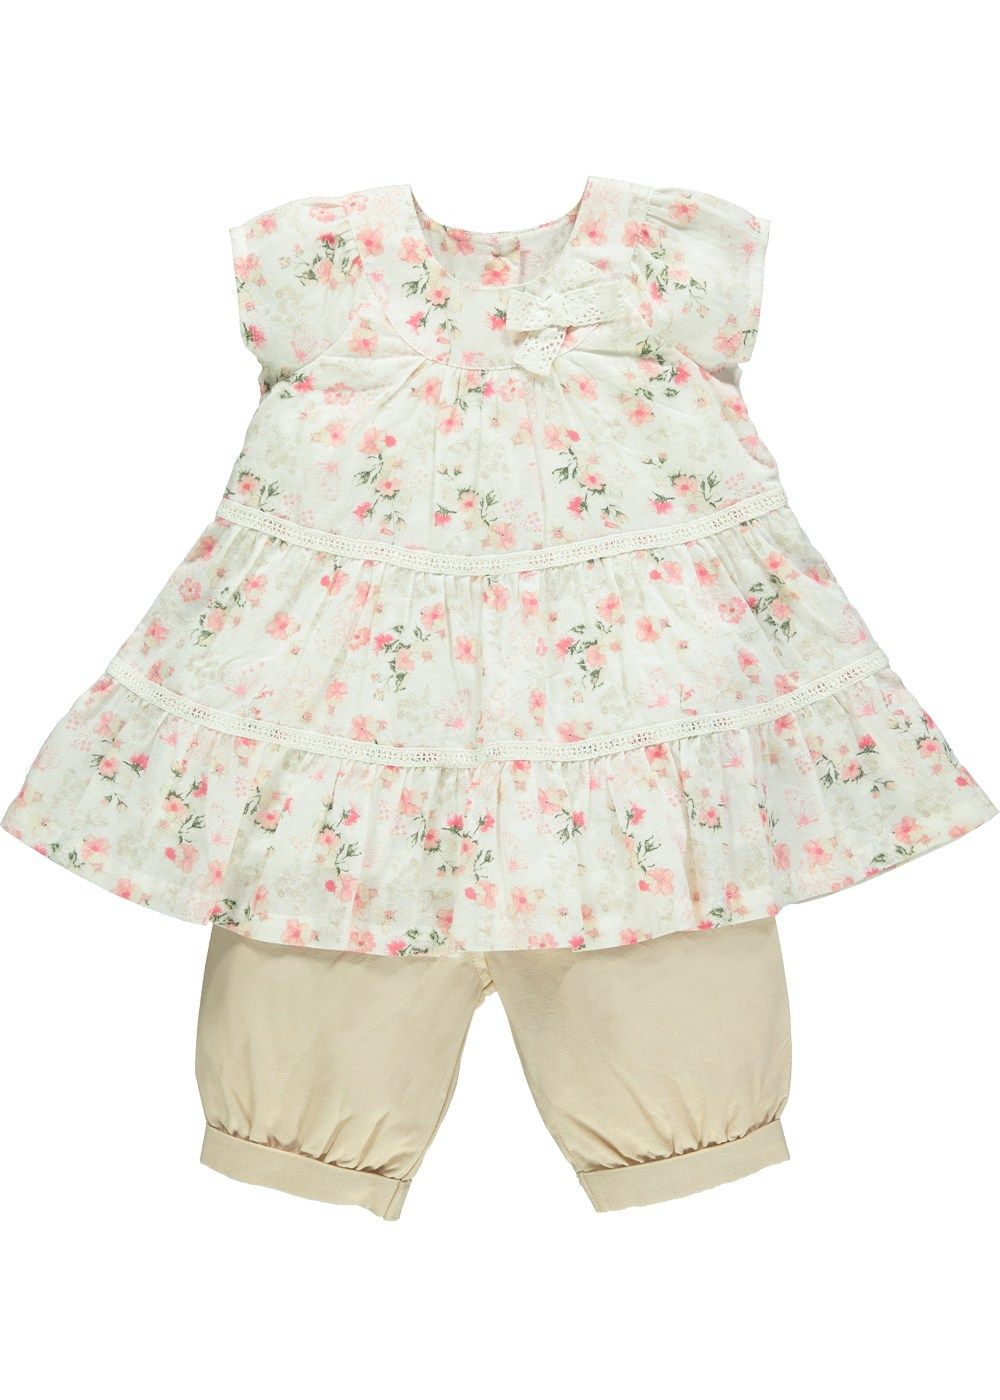 Girls Floral Print Top and Chambray Trousers Set (3mths-5yrs) - Matalan £10